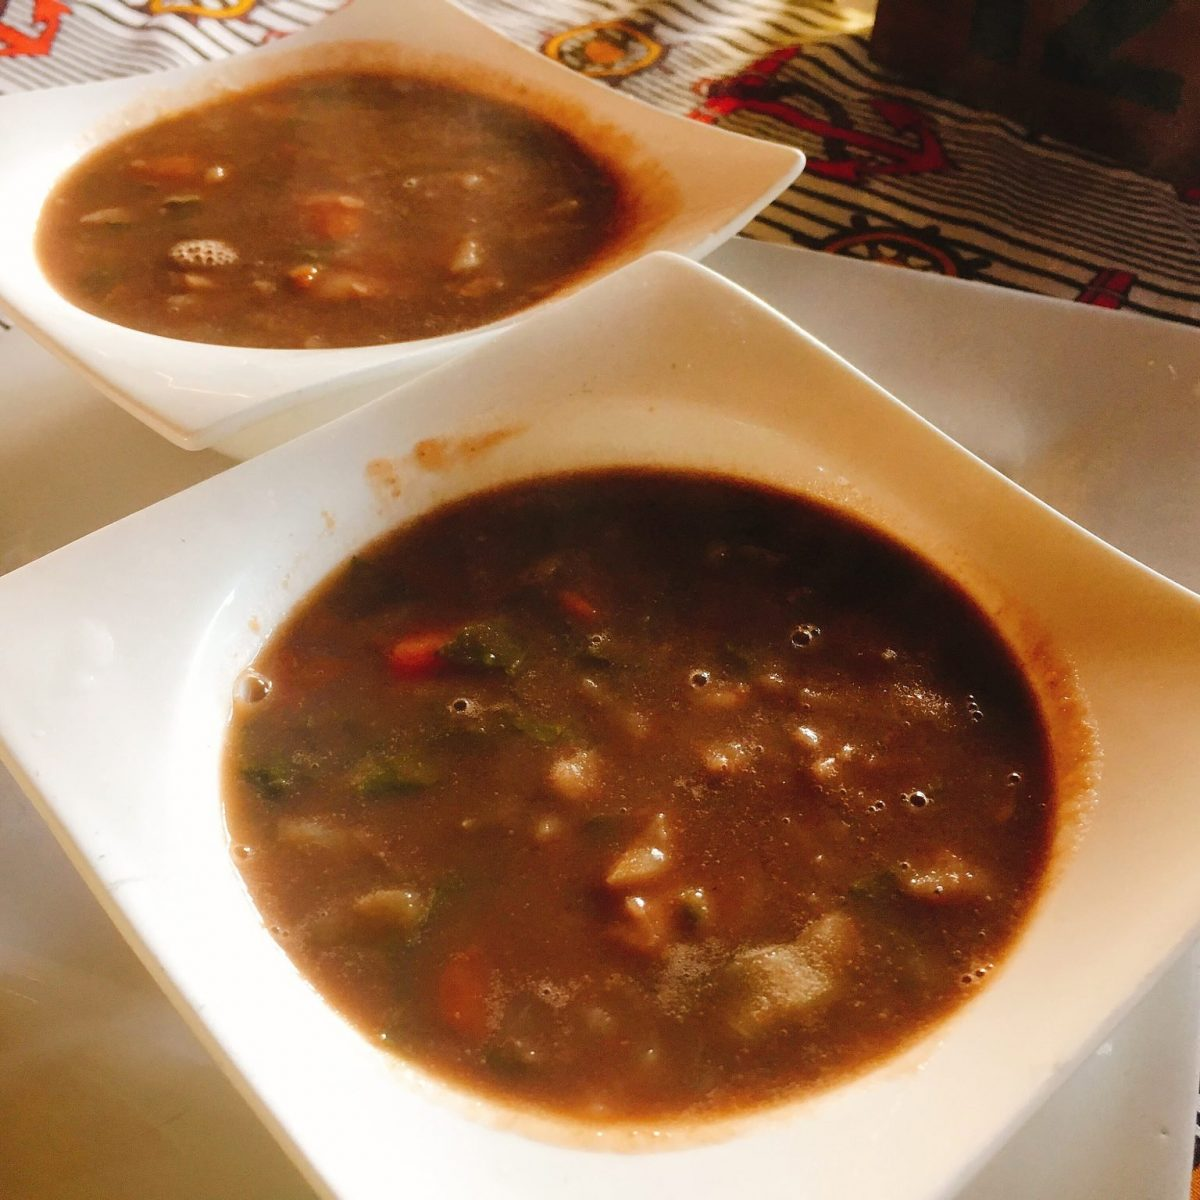 sopa de legumes - vegetables soup - tasty African food